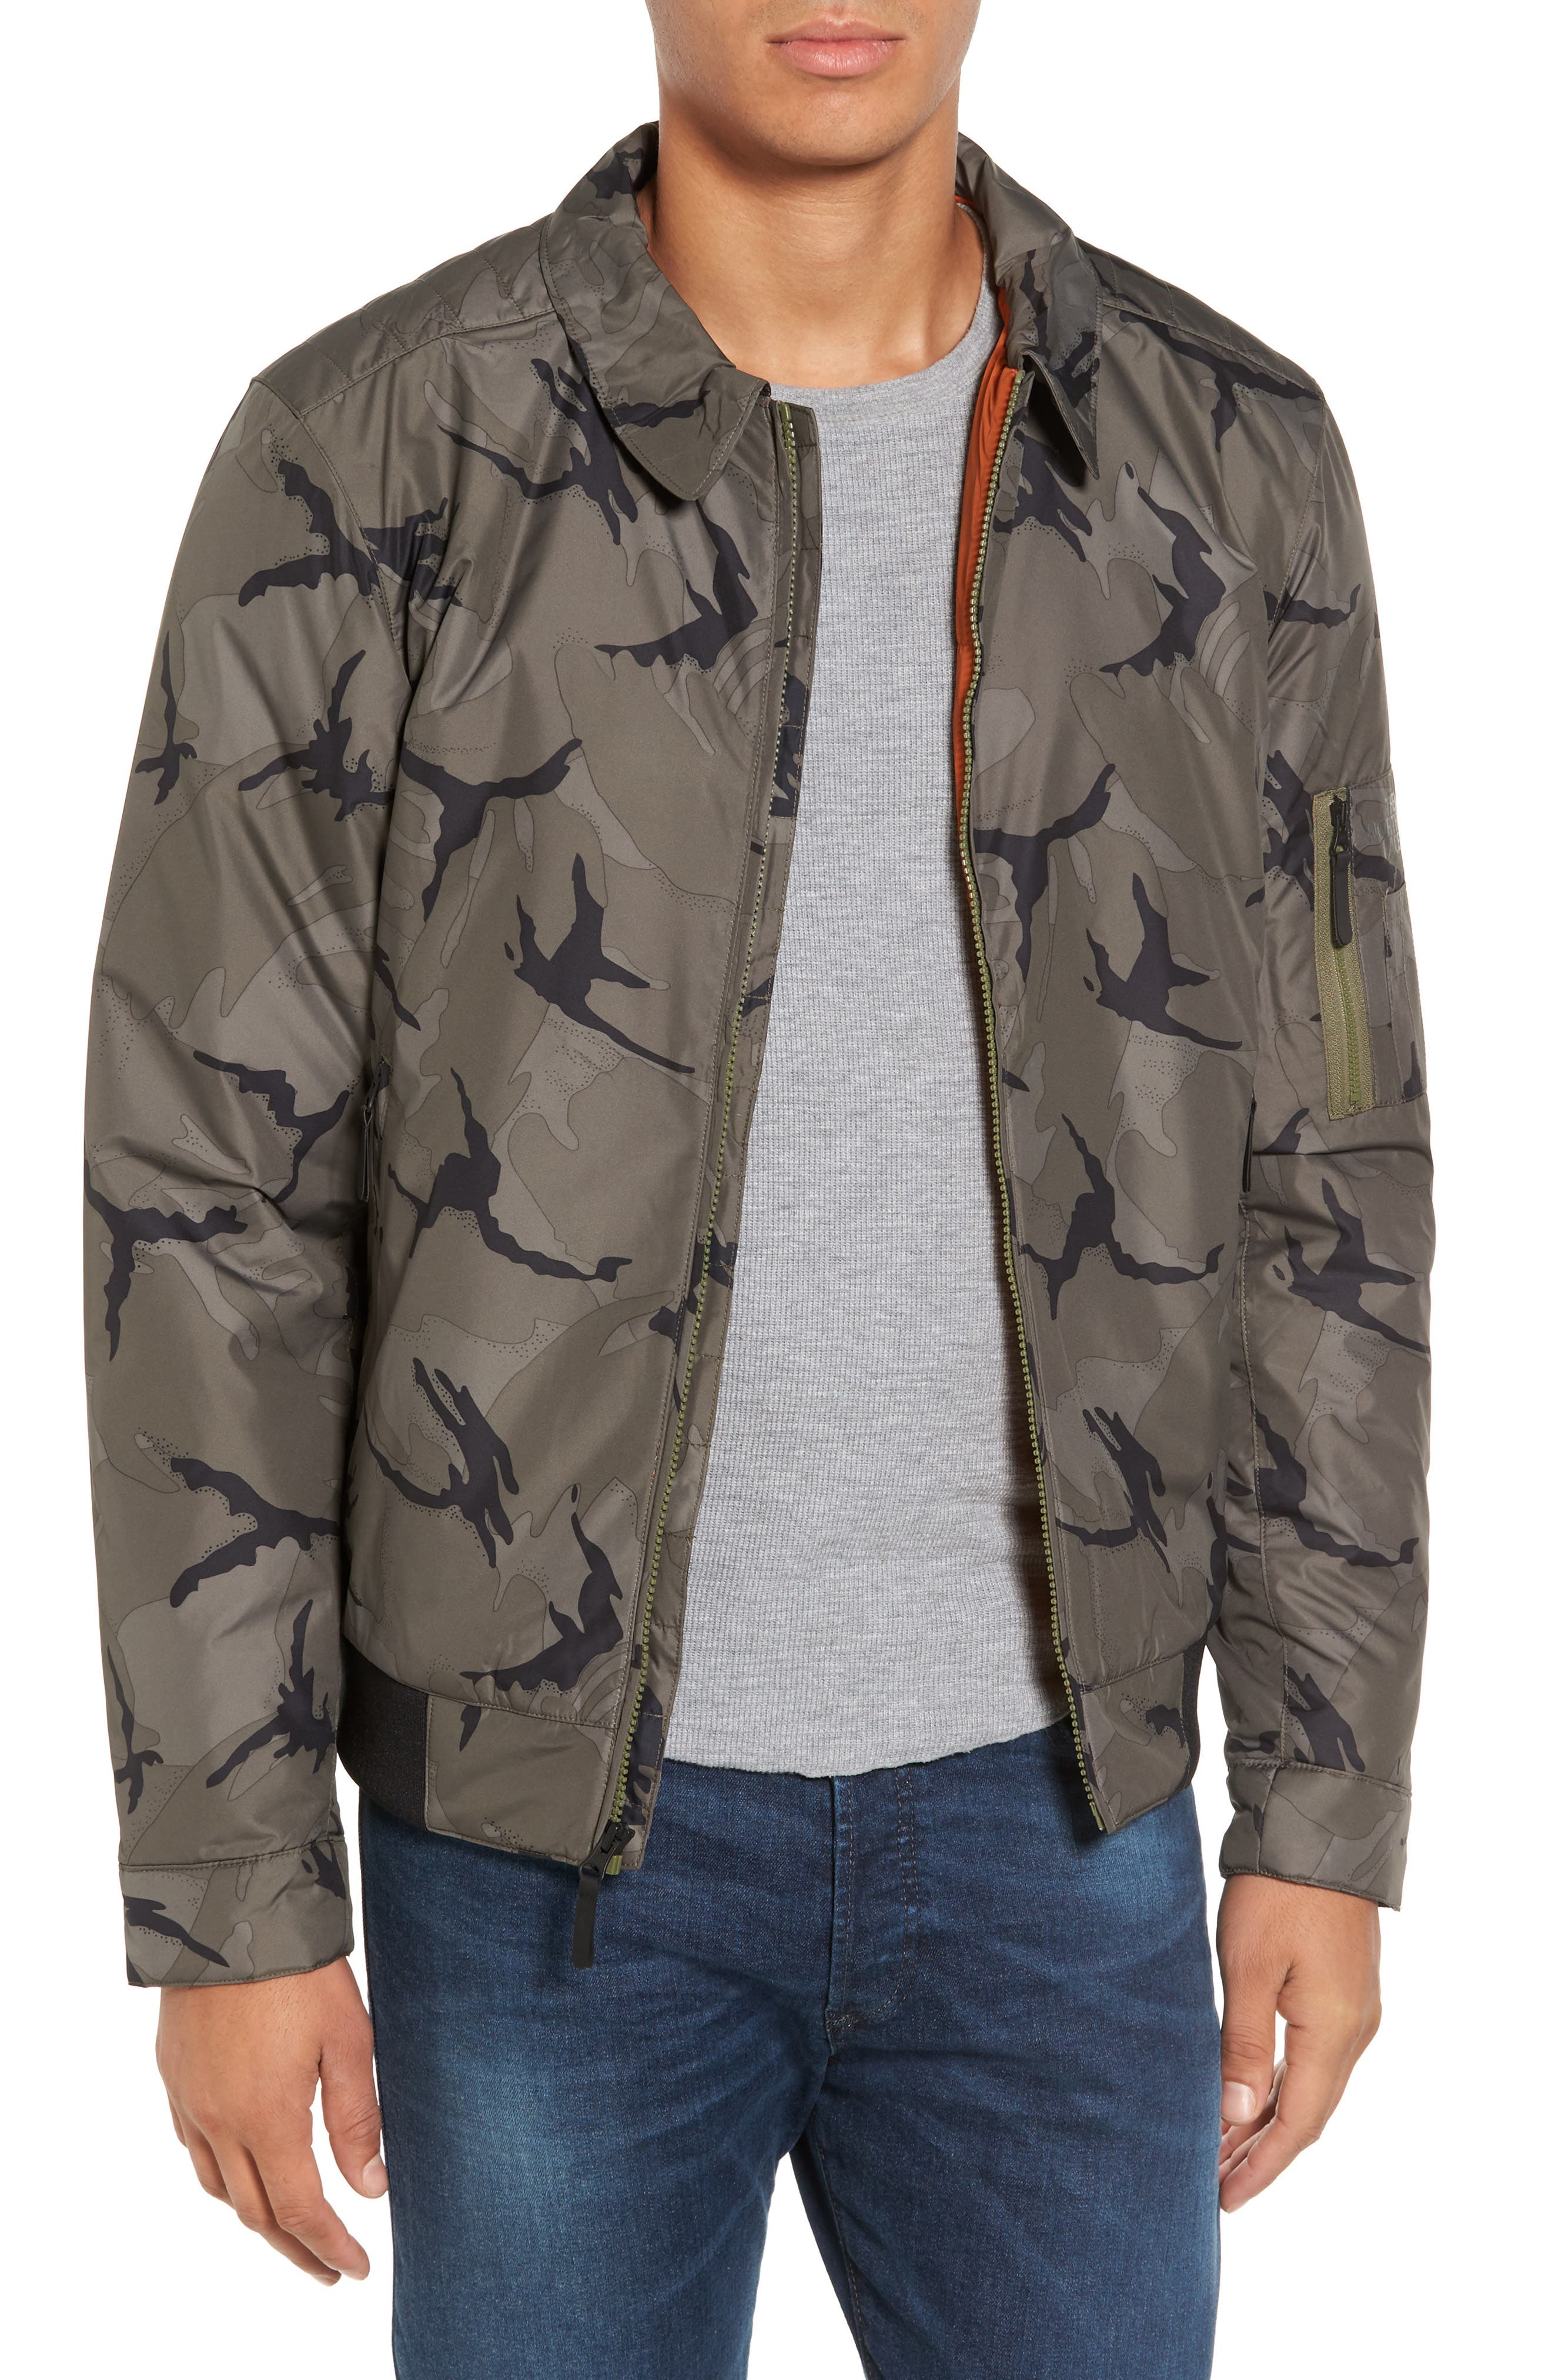 6c903759b The North Face Barstol Aviator Jacket on sale at Nordstrom for ...